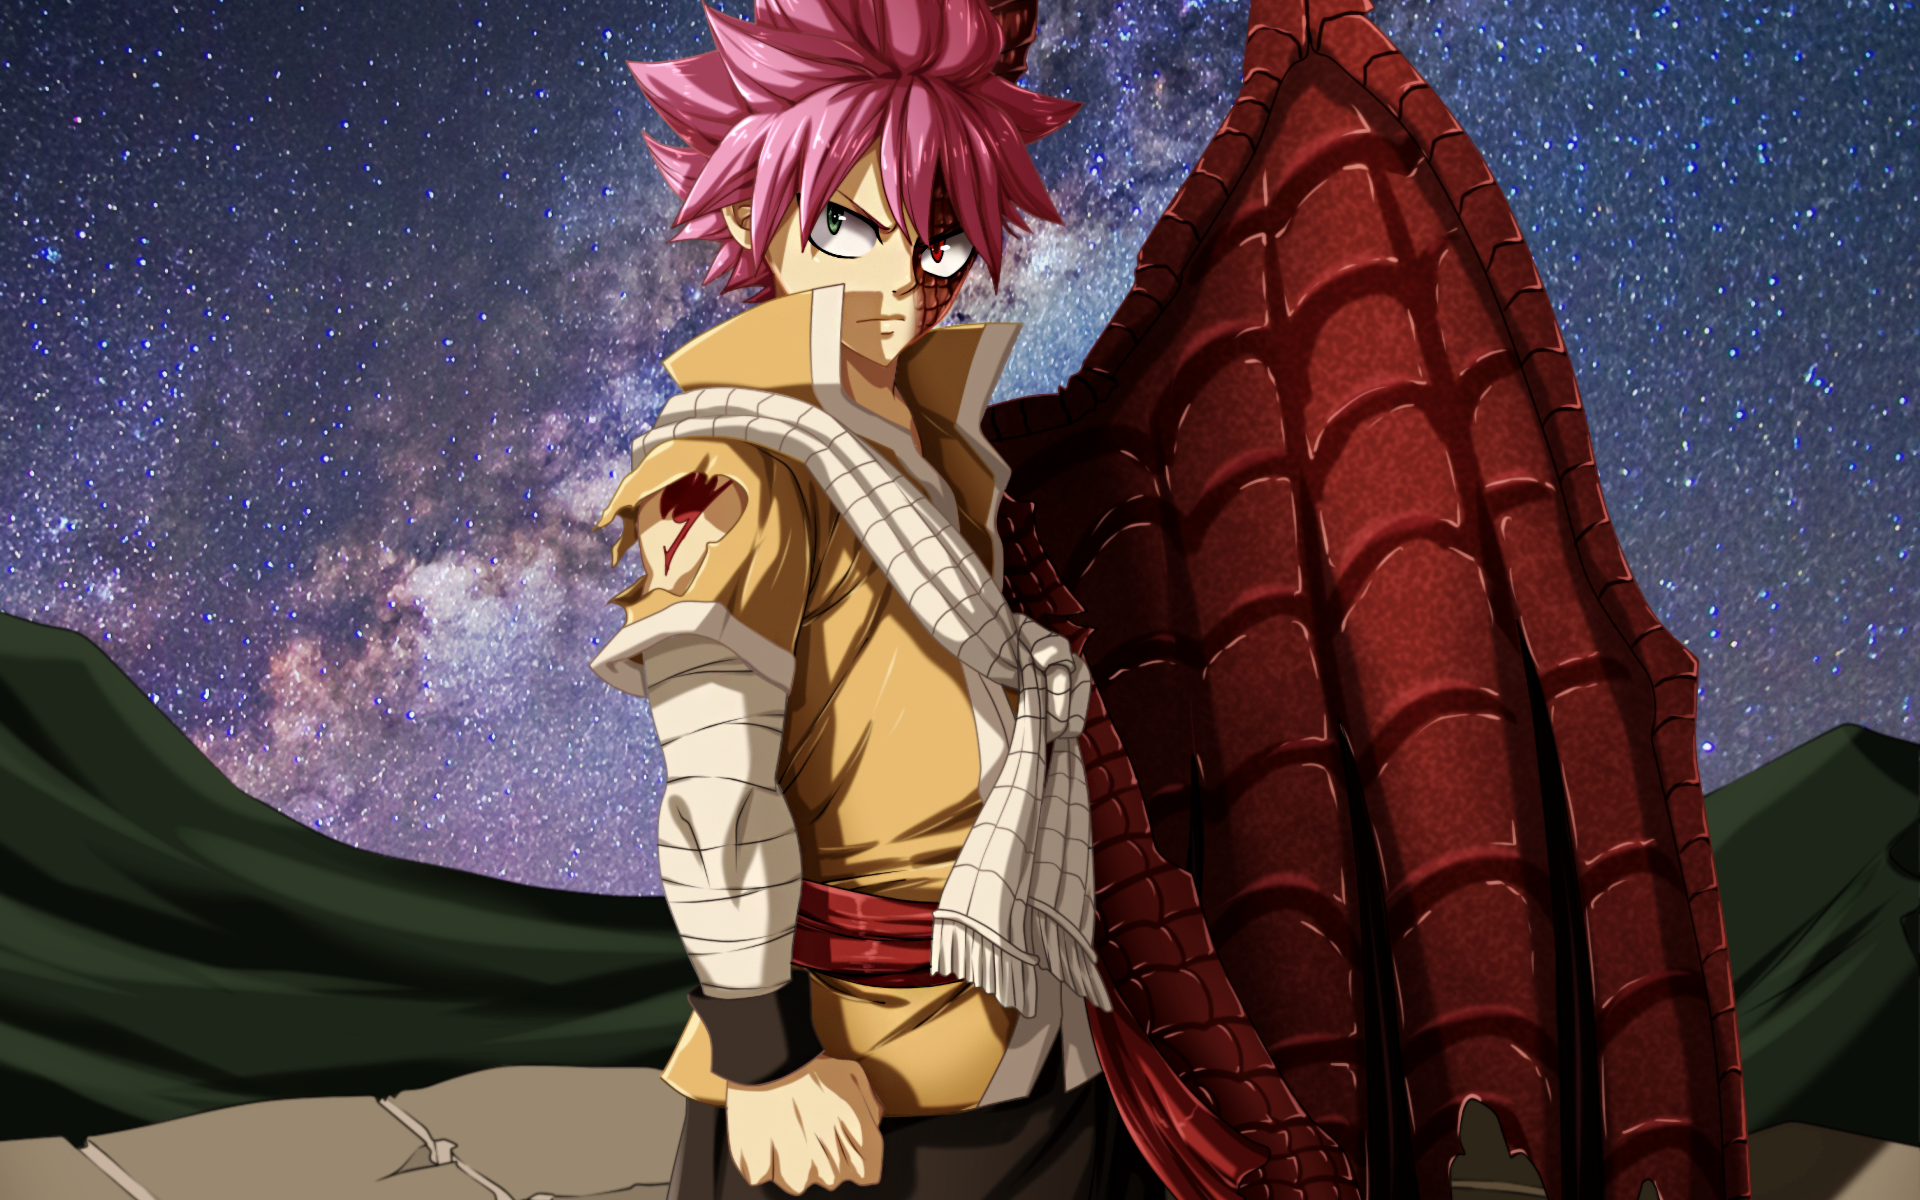 Fairy Tail Dragon Cry E N D Etherious Natsu Dragneel Created By Zeref Zeref S Deceased Younger Brother Made Fairy Tail Movie Fairy Tail Fairy Tail Anime